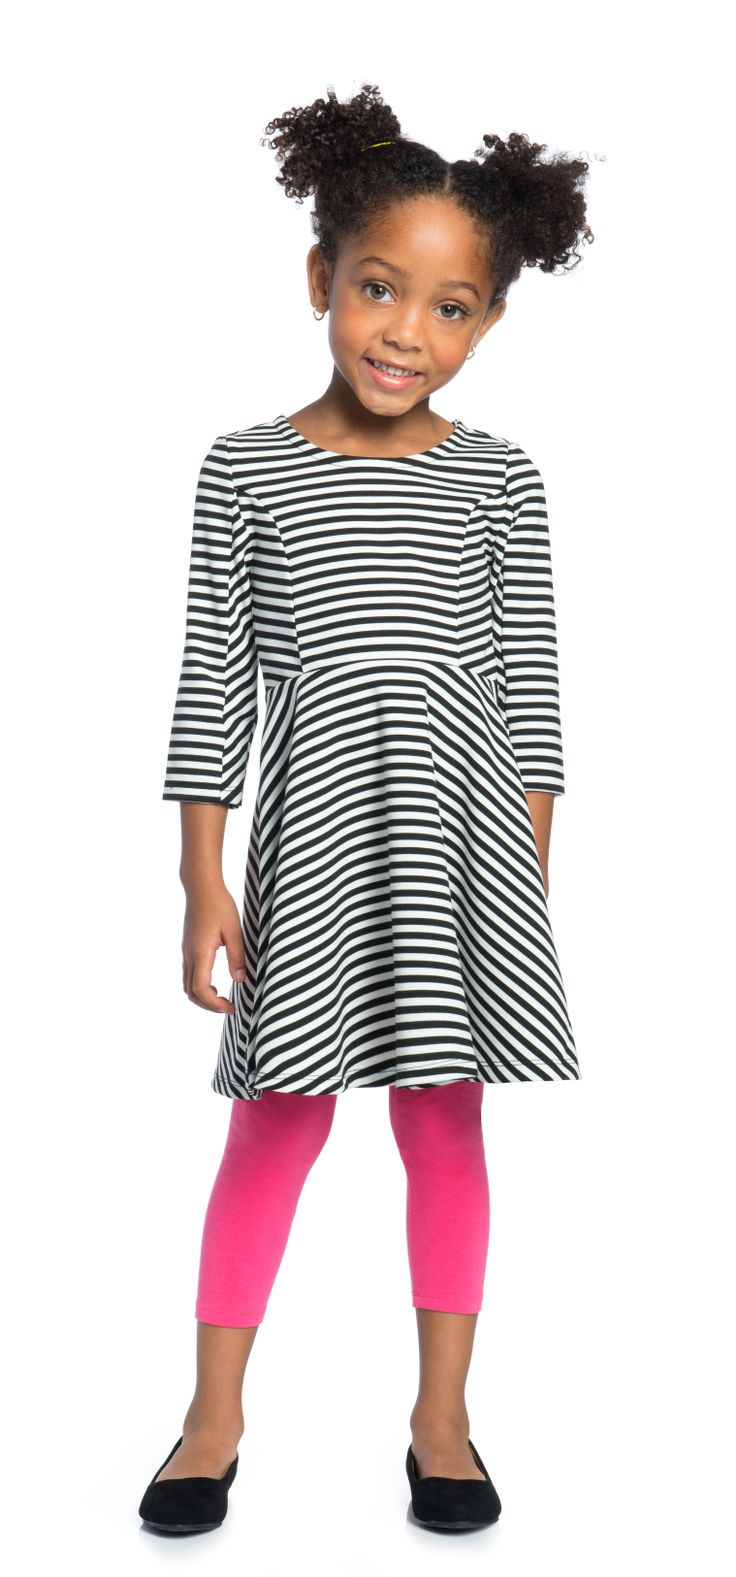 Stripe Girl Outfit  - PIN TO WIN! Enter the February Fresh Pinterest Contest for a chance to win a brand-new FabKids wardrobe! Ends 2/19#FabKidsFebFresh @FabKids